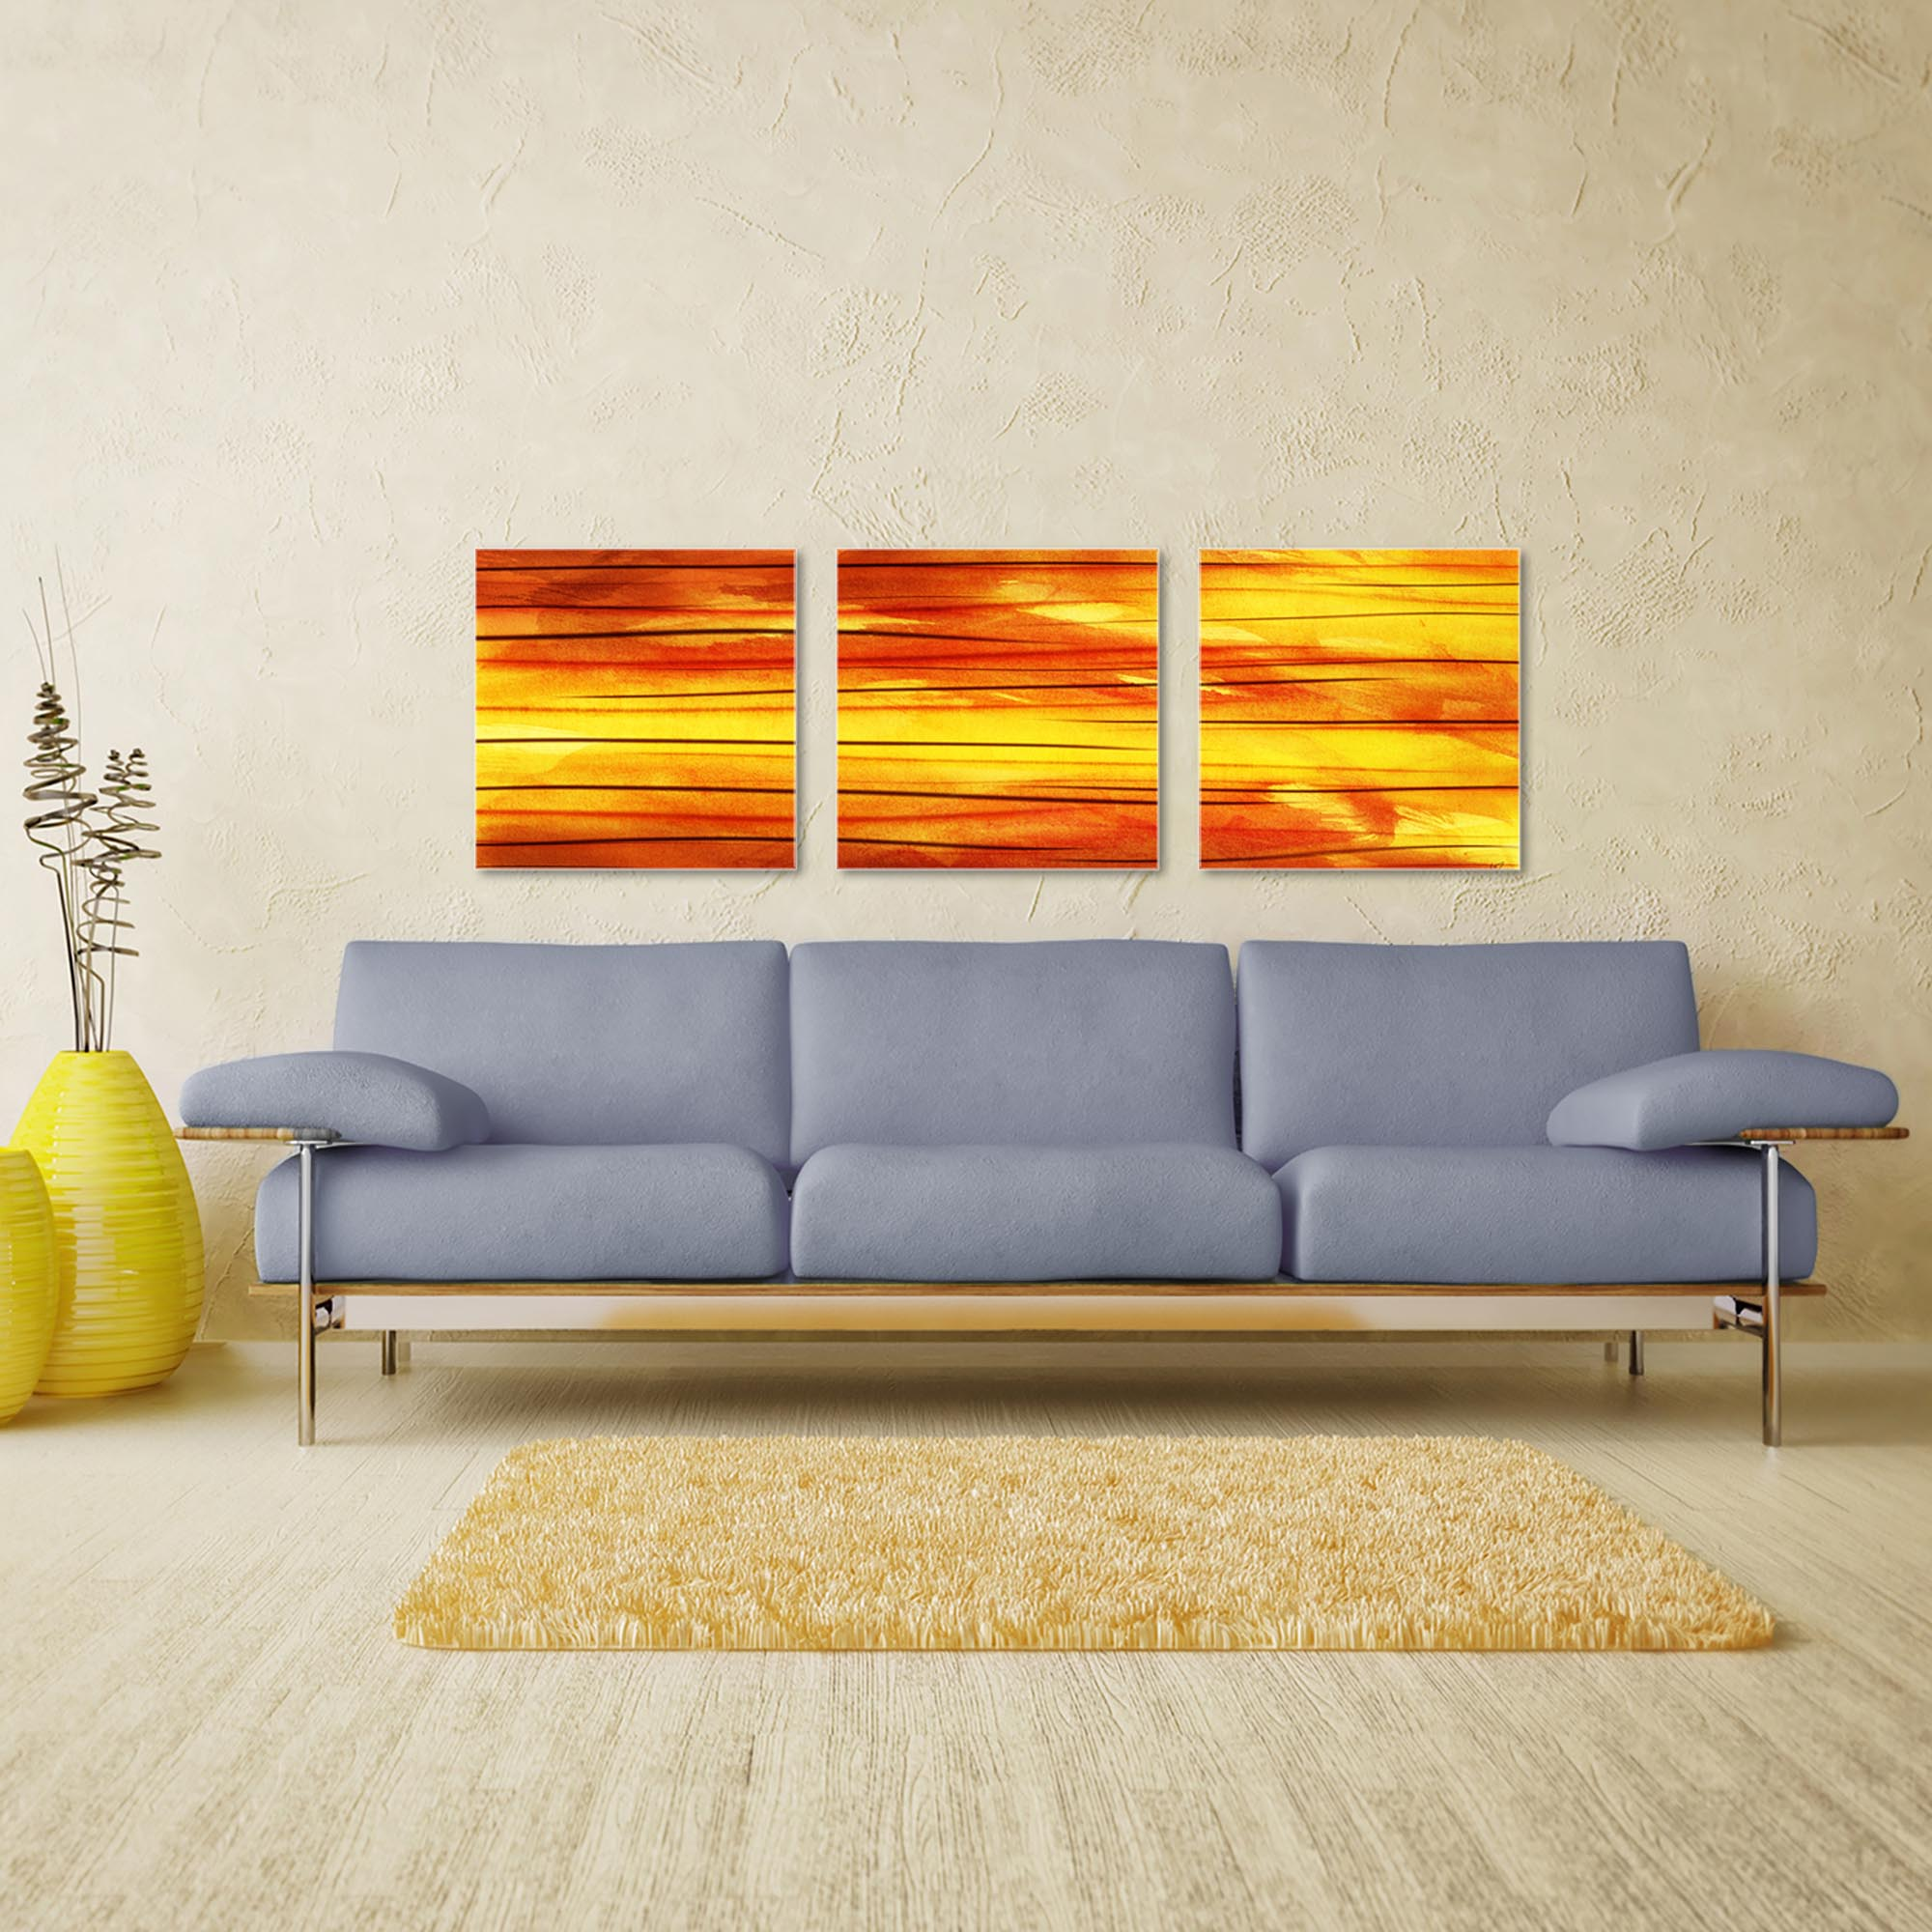 Momentum Triptych Large 70x22in. Metal or Acrylic Abstract Decor - Image 3